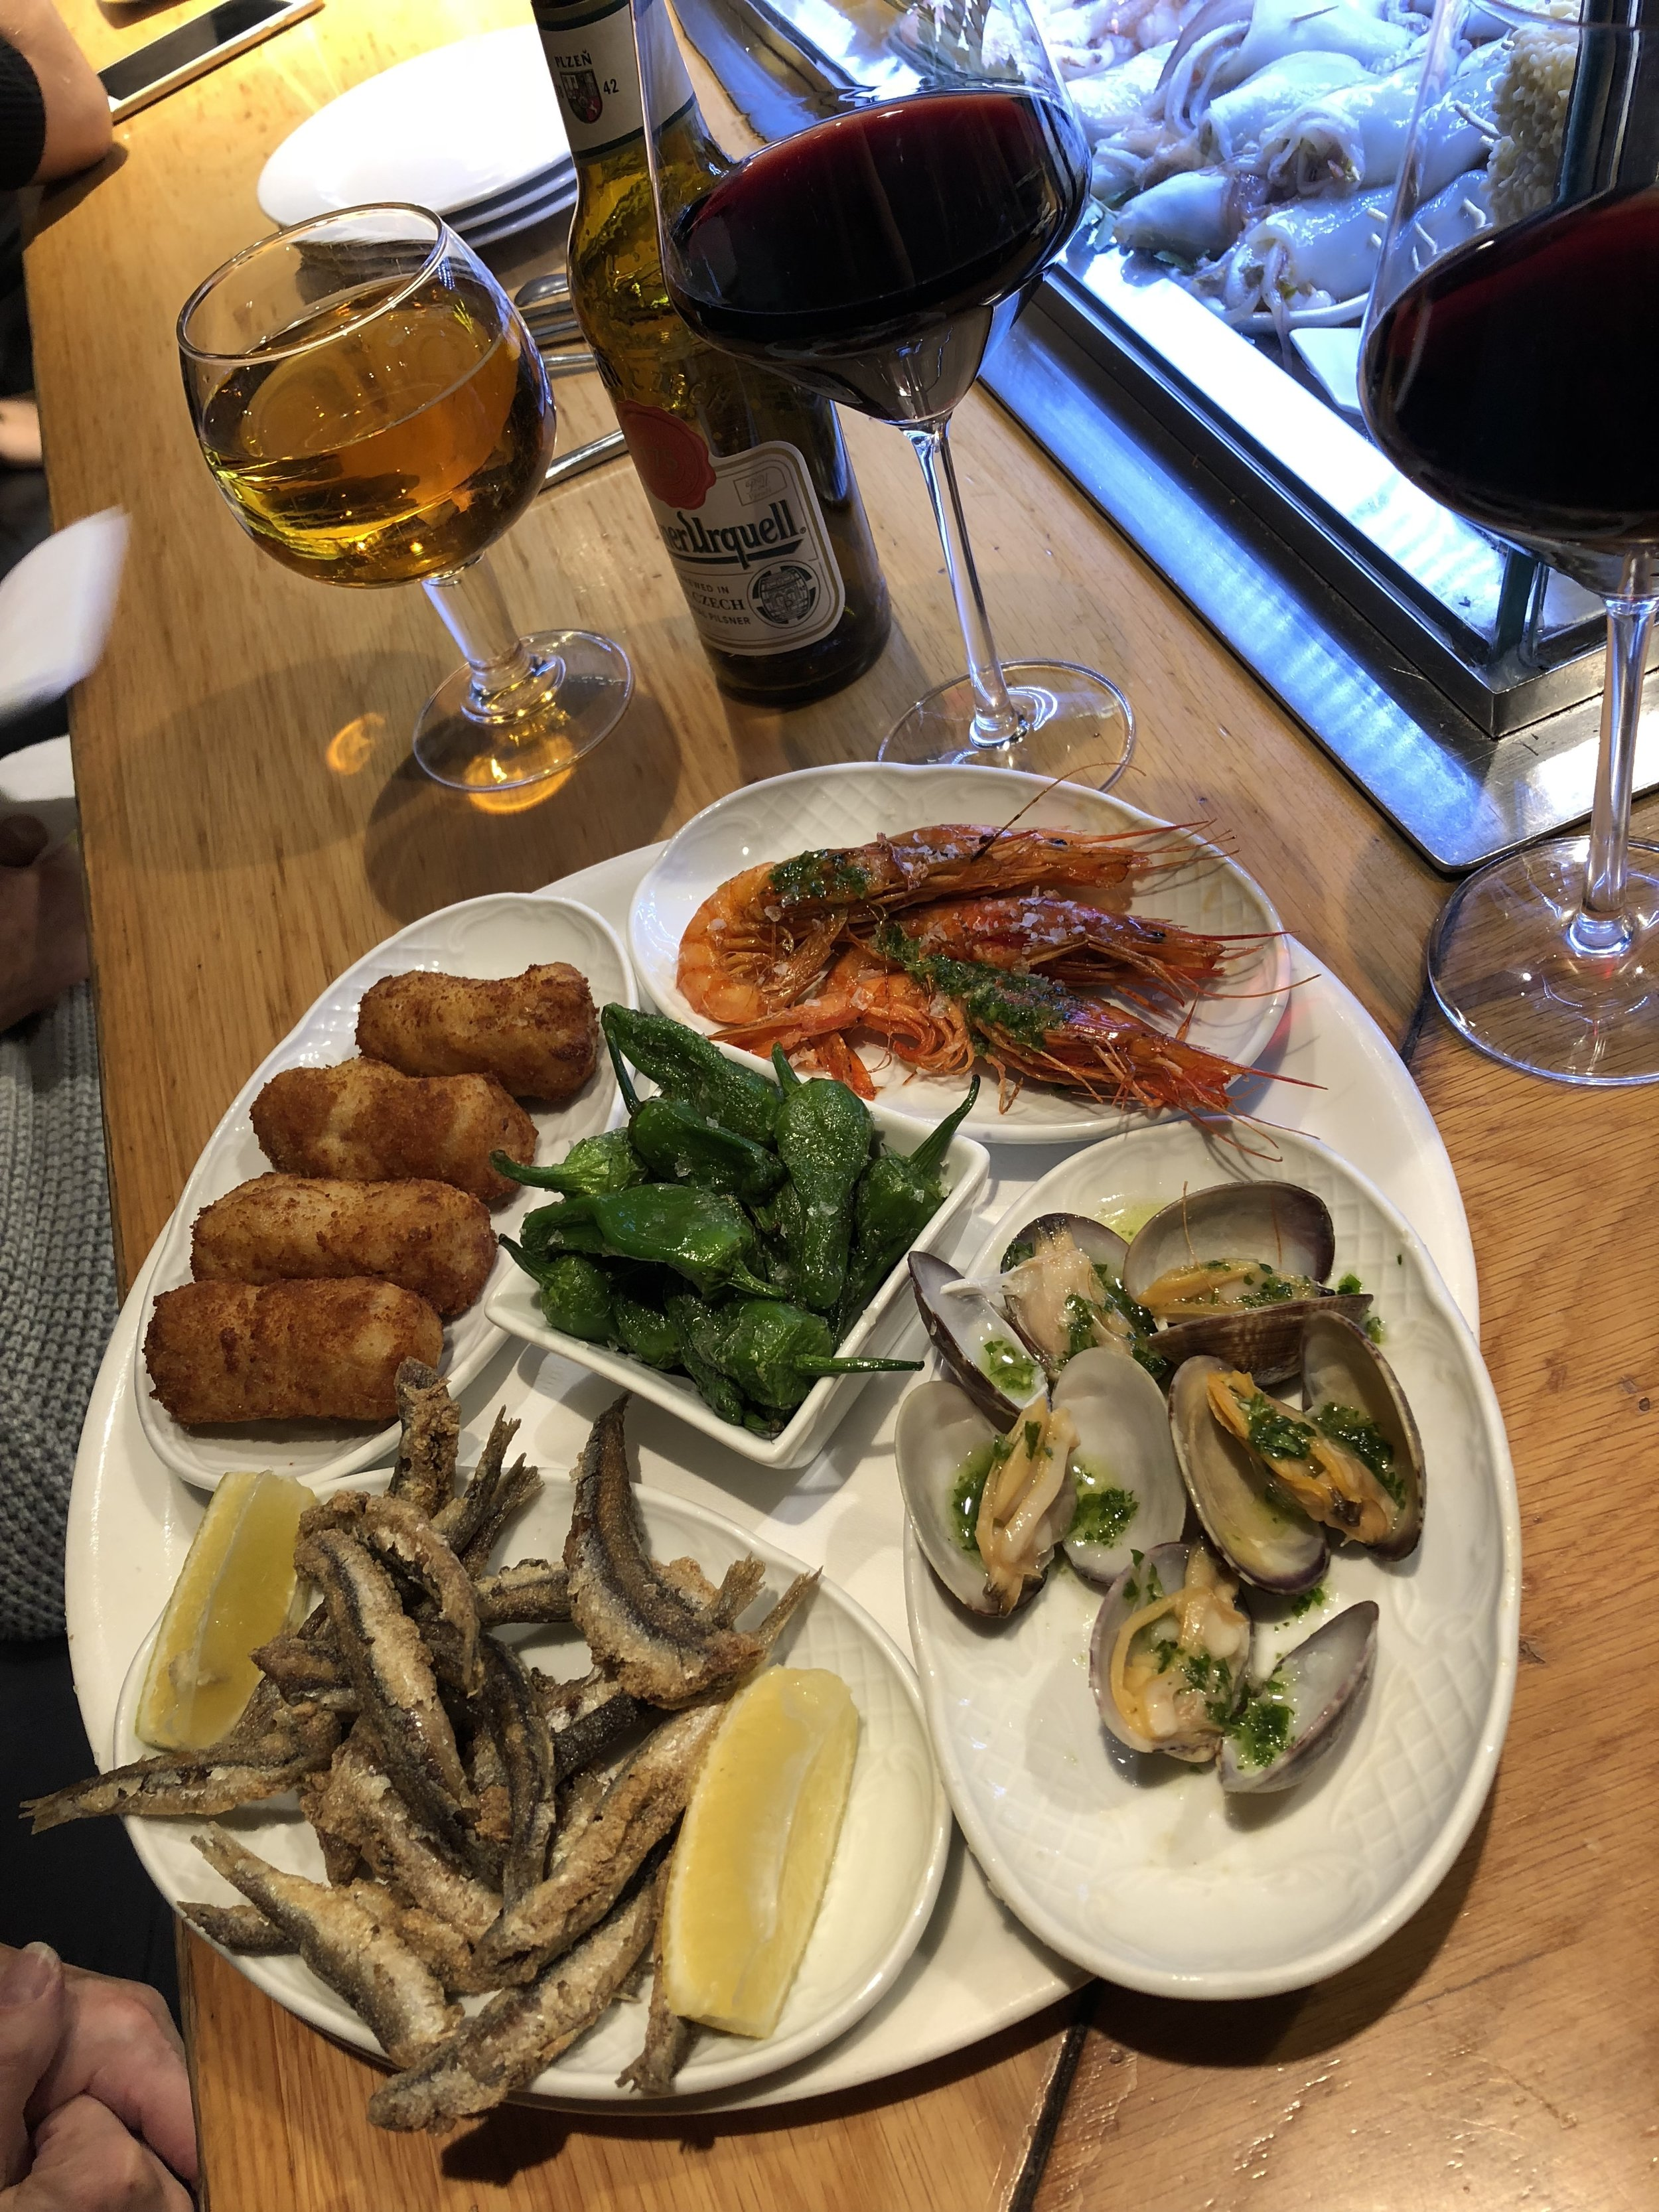 Selection of house tapas at Cerveceria Catalan, including croquettes, shrimp, crispy smelt, poblano peppers, and the best clams we had.